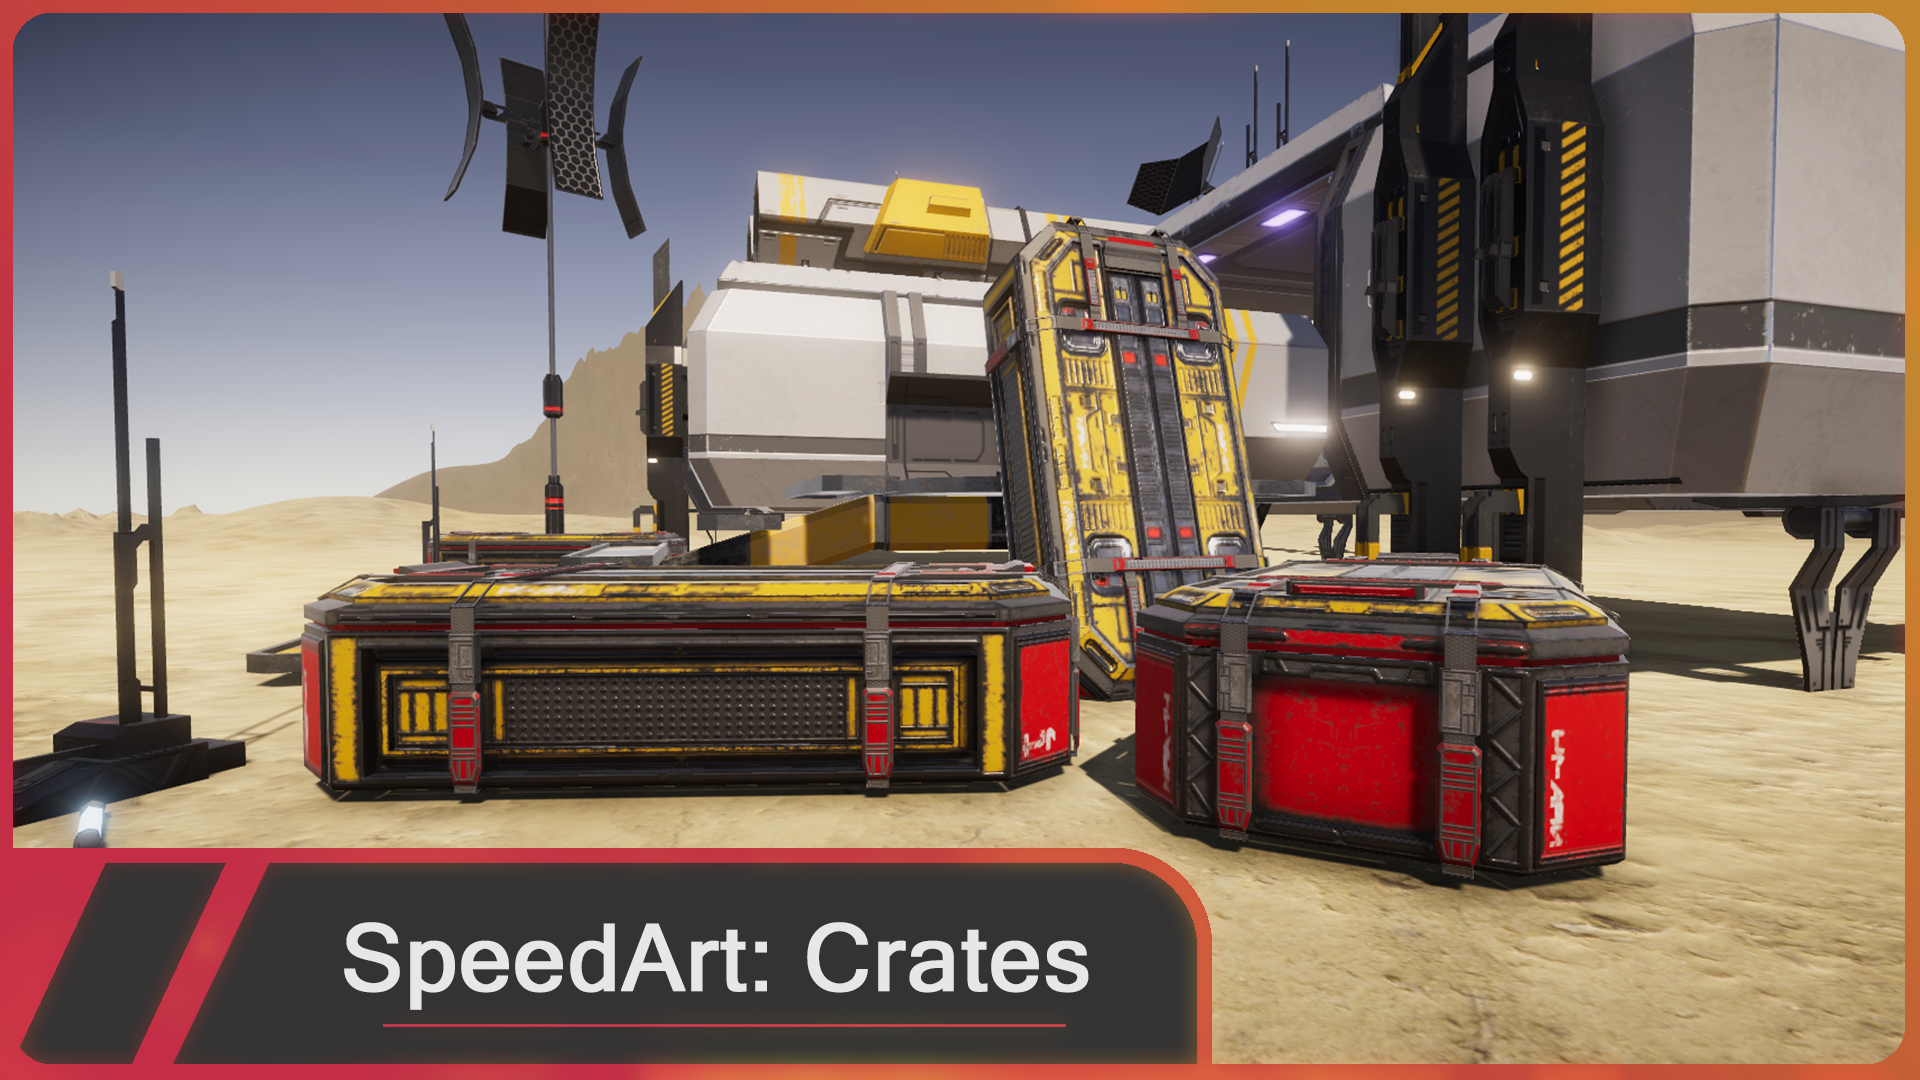 Blender SpeedArt Crate (Blender,Substance painter, Unity)